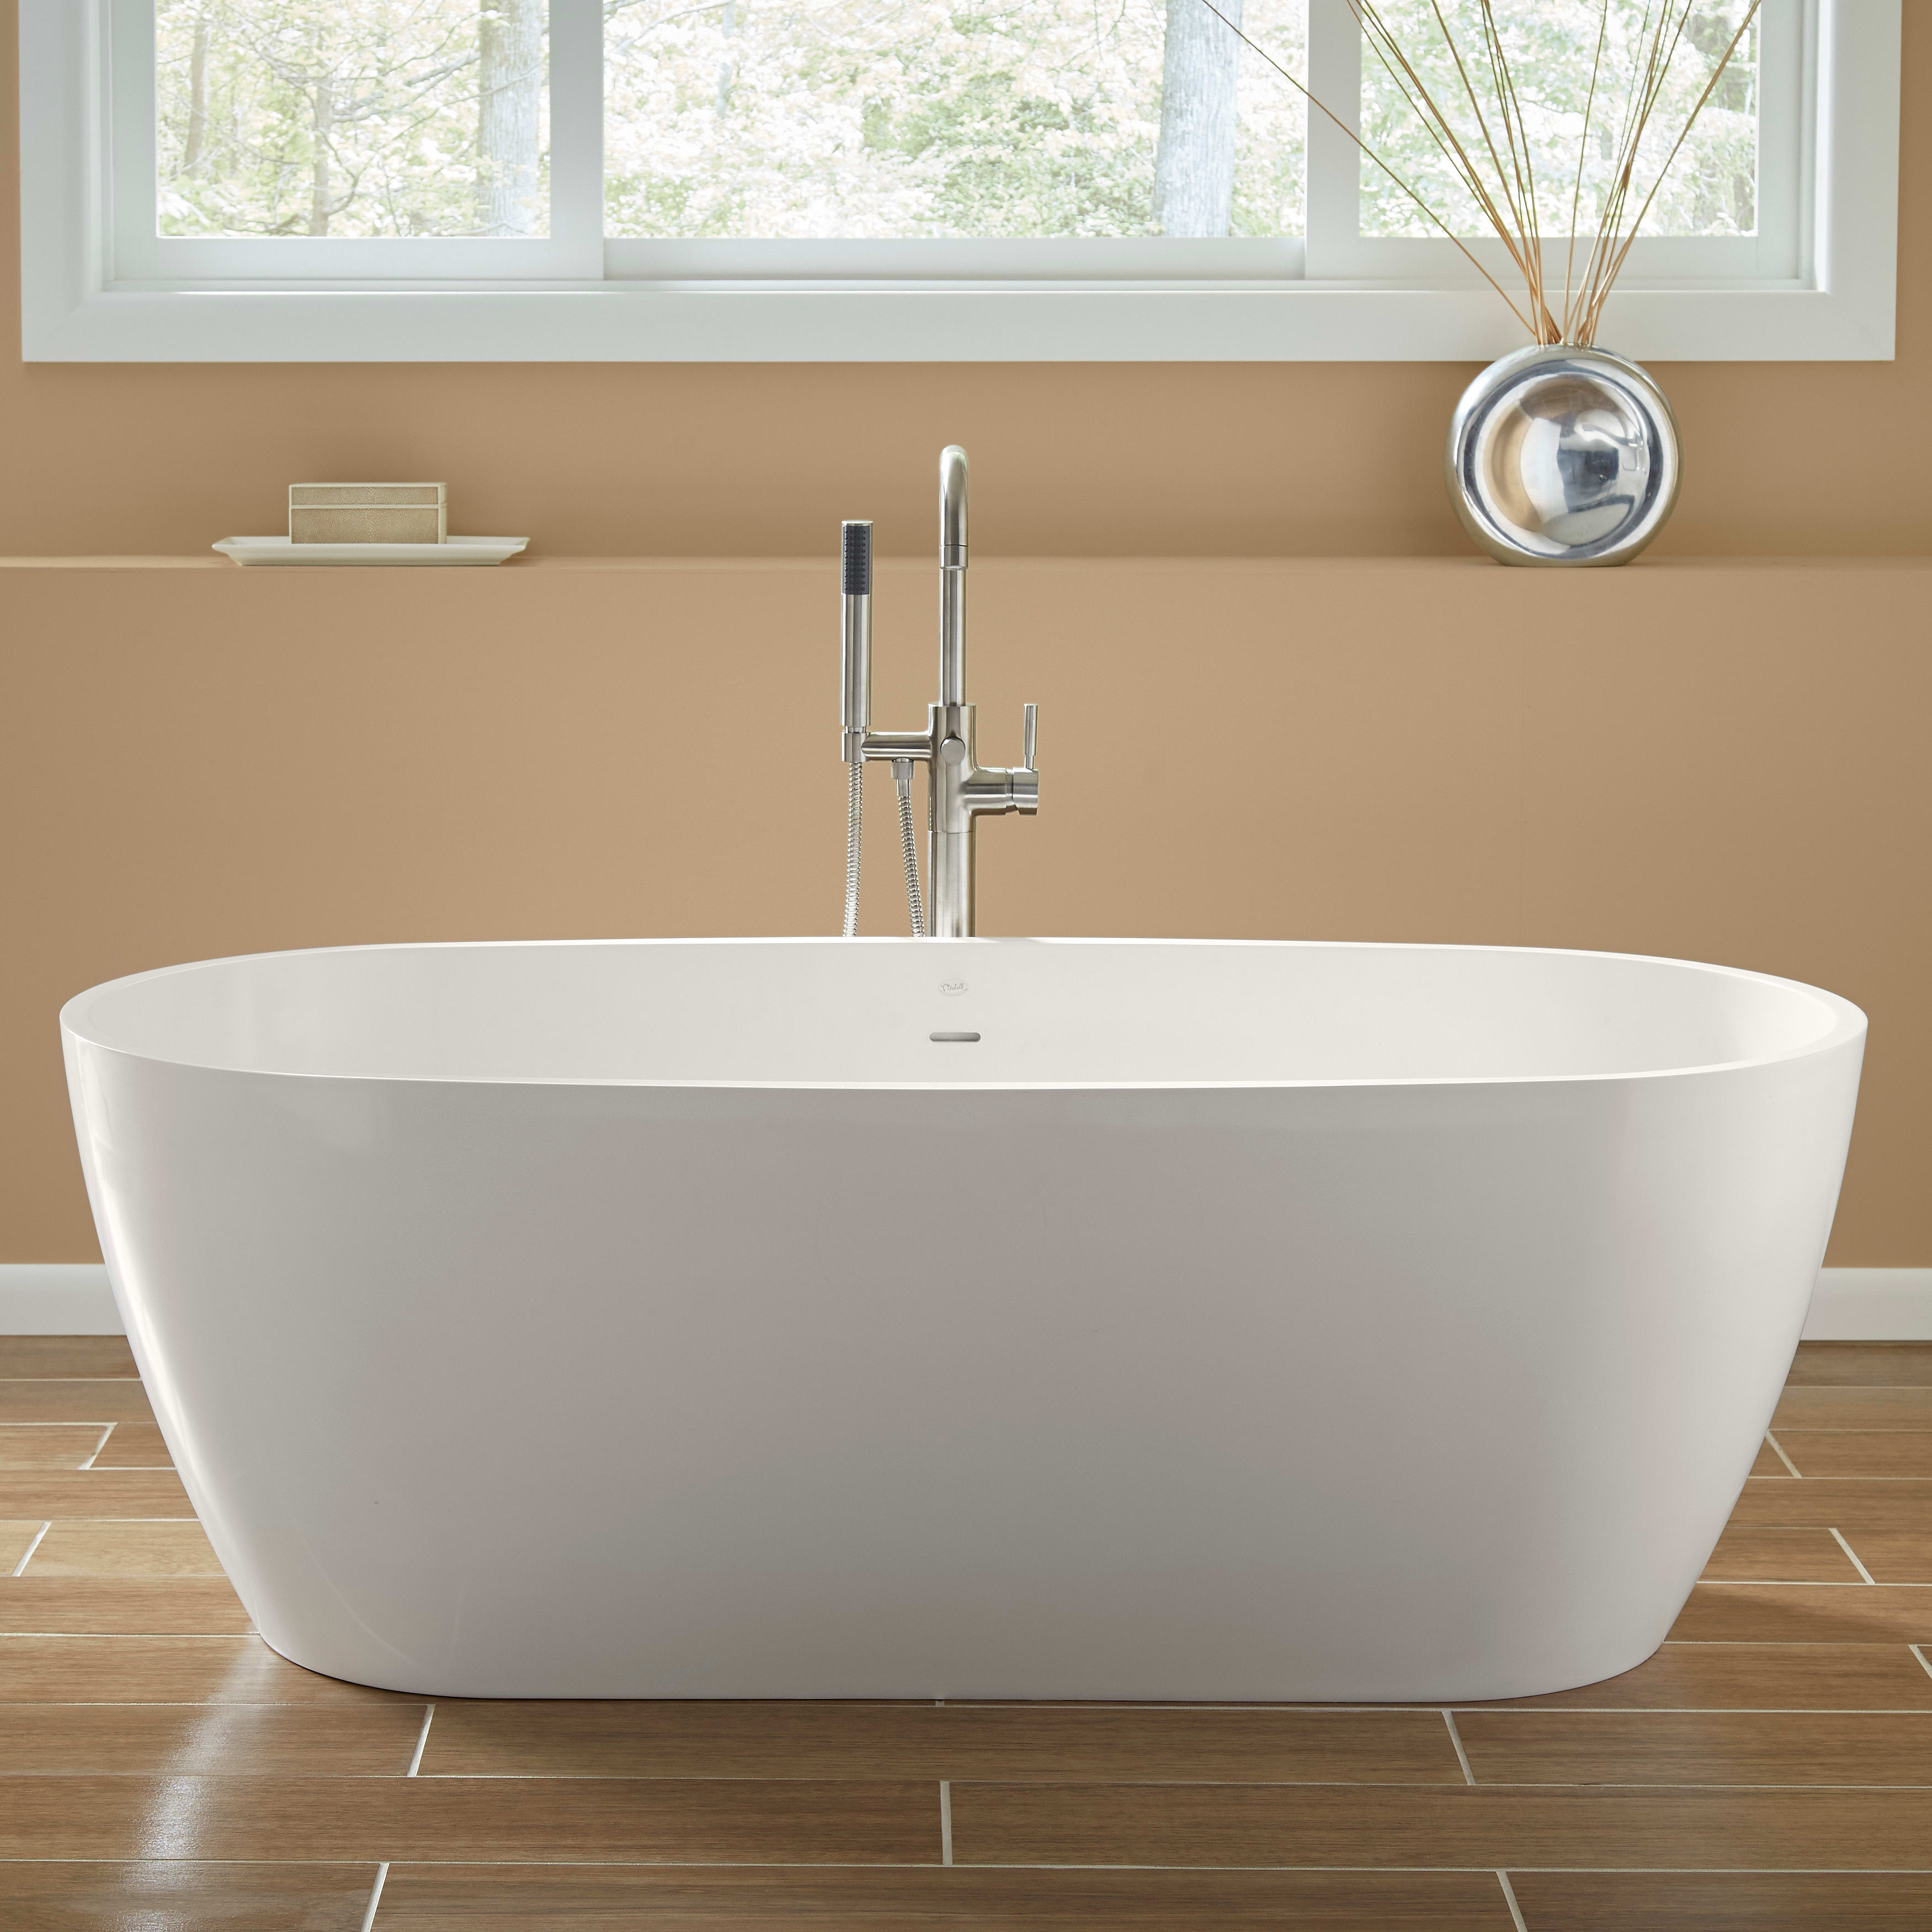 watch replace tips shower youtube kit mirabelle smarter to tub a install how and tubs trim